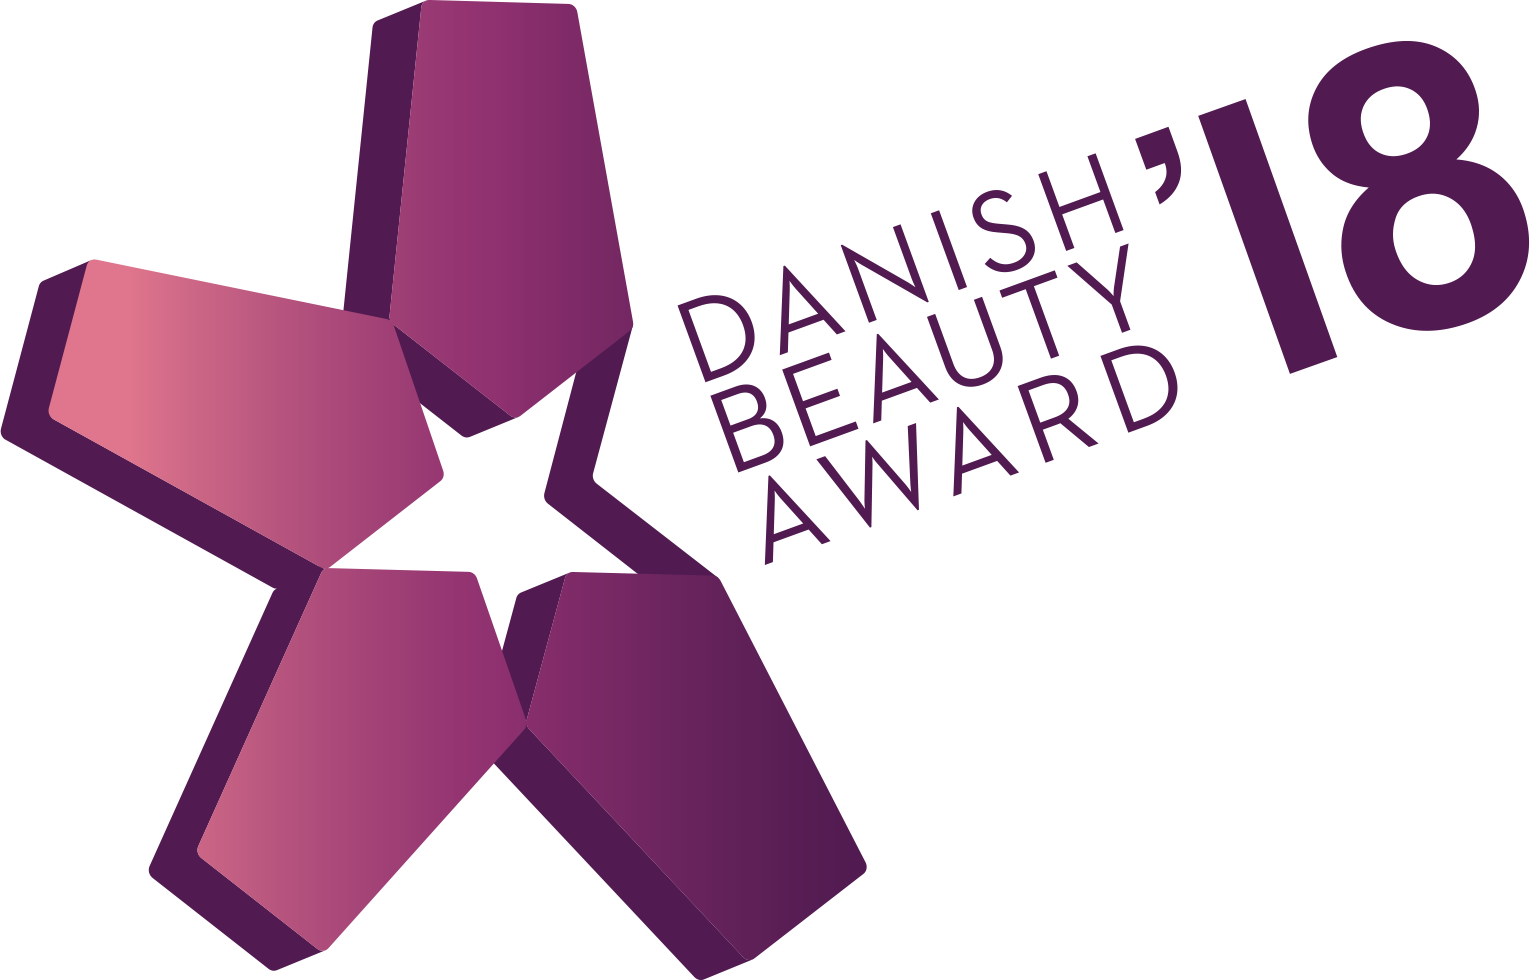 Danish Beauty Award